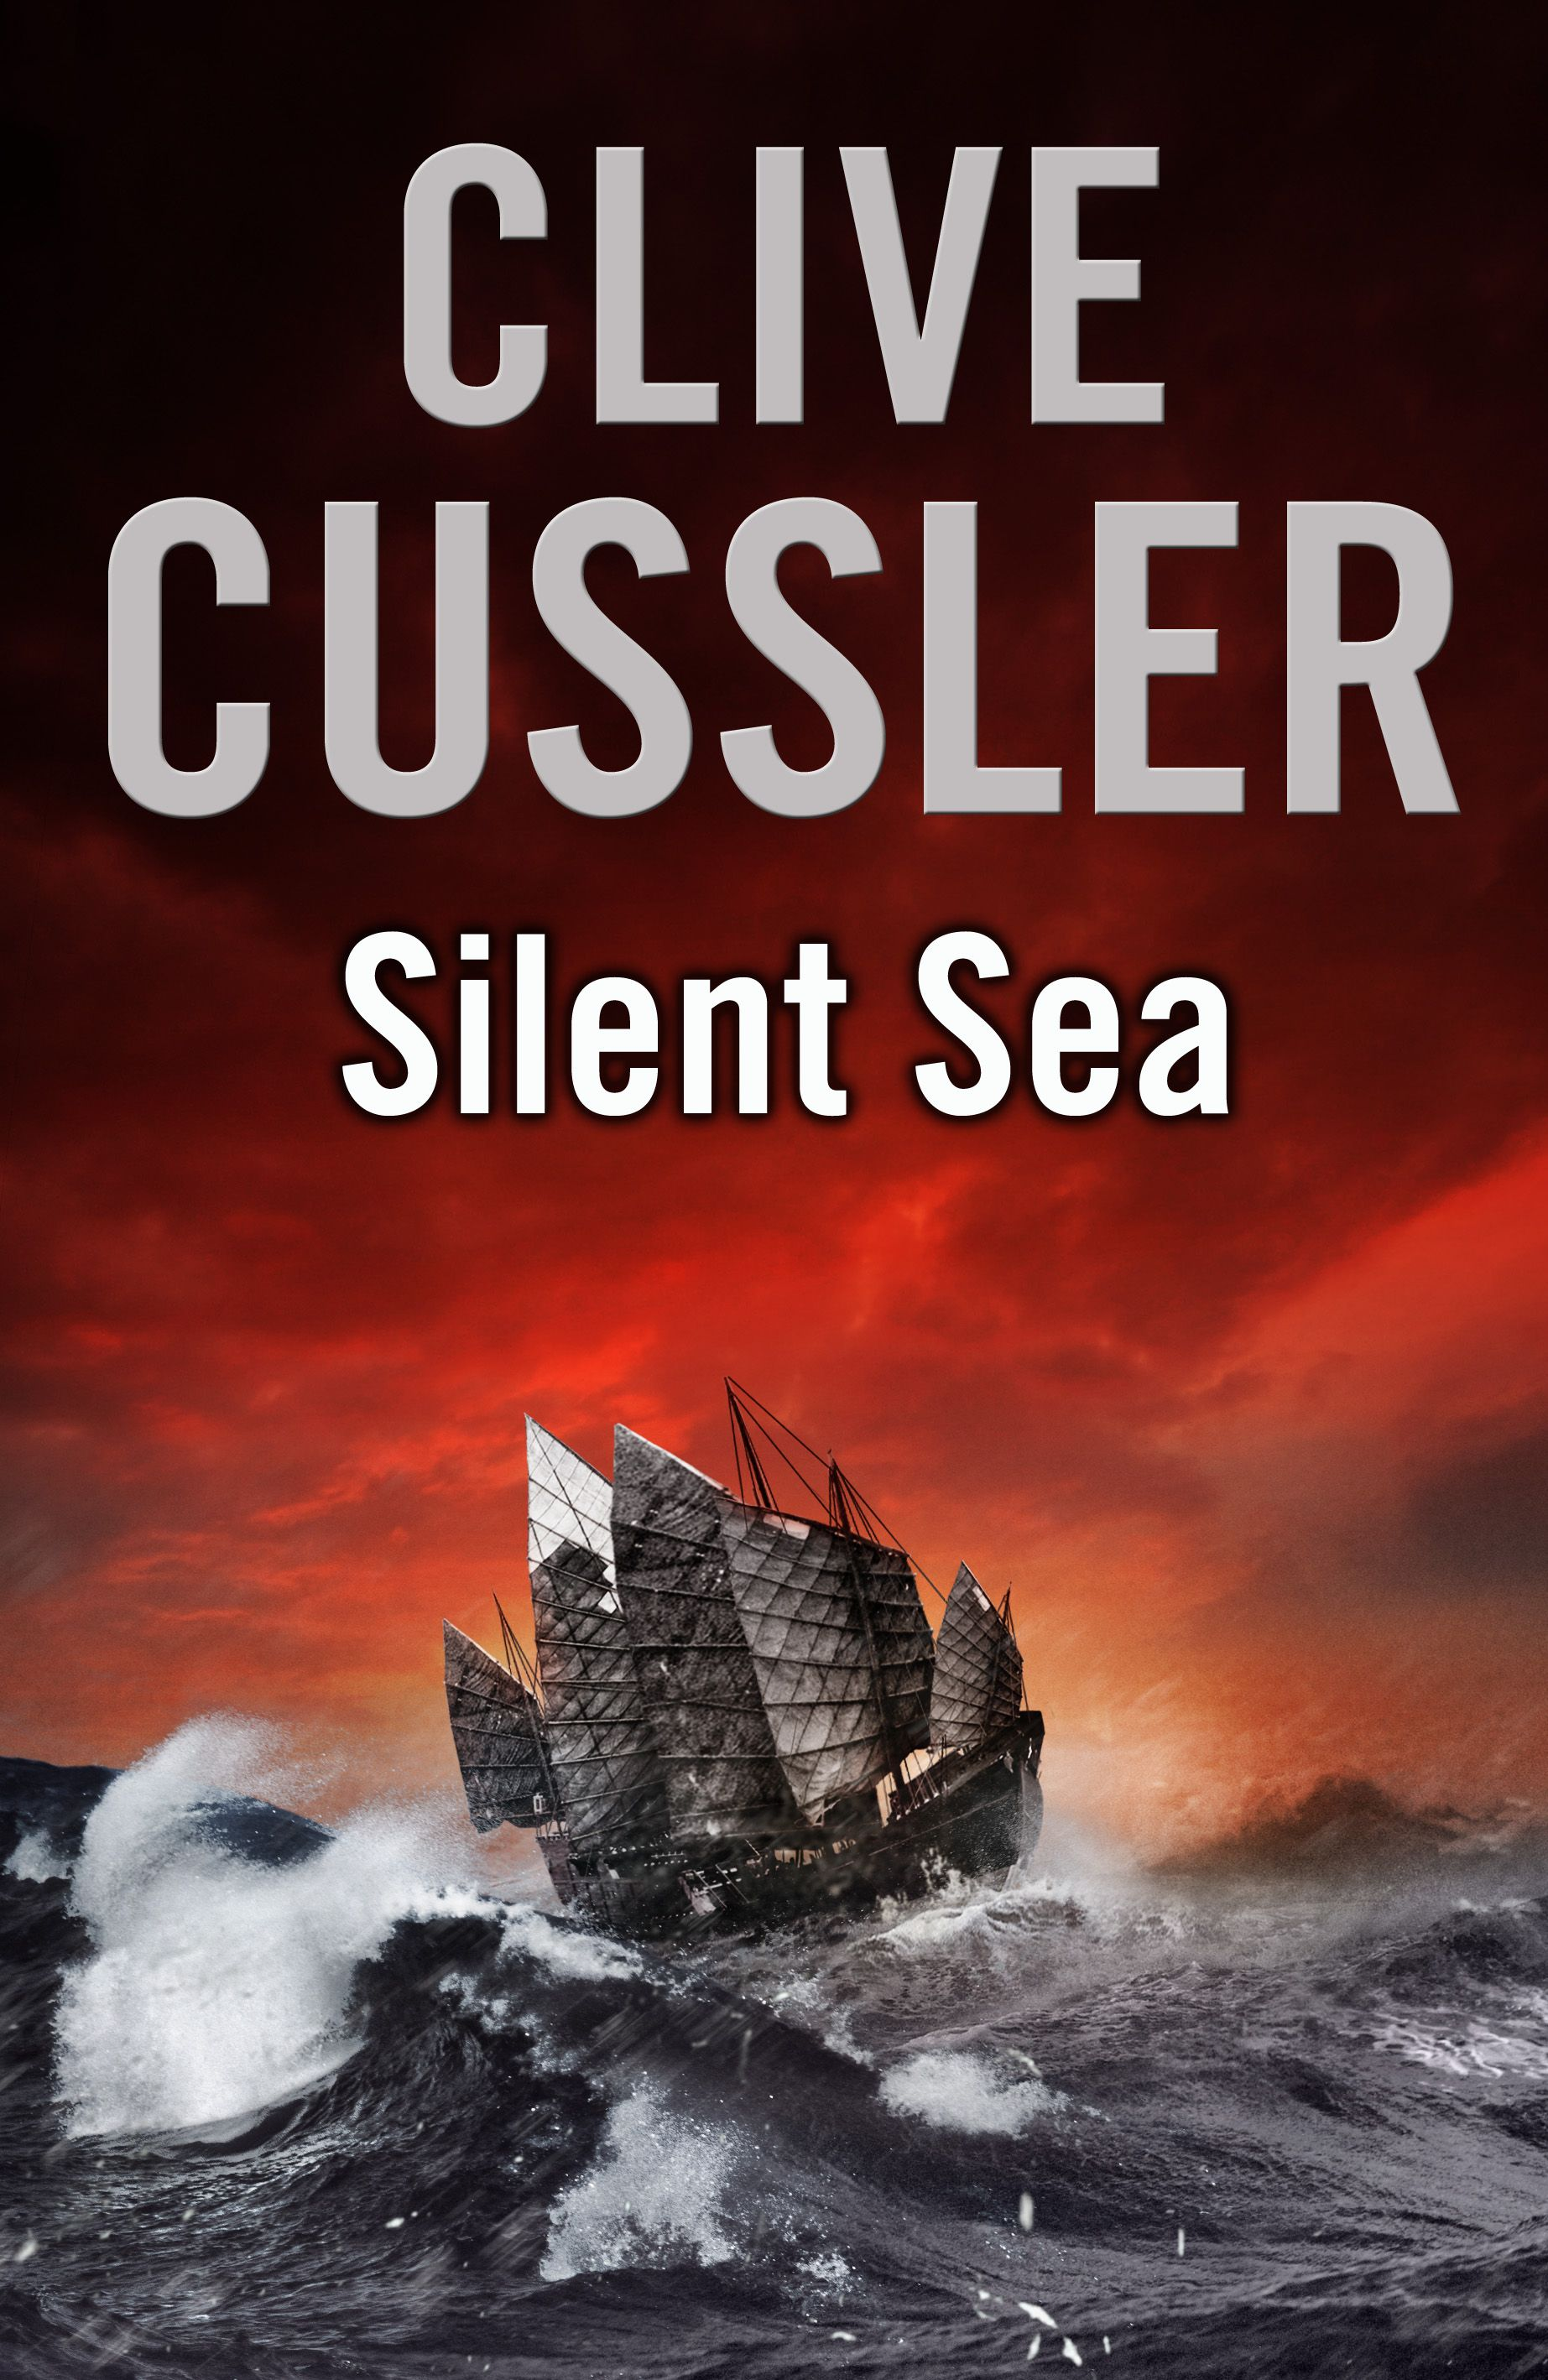 Clive Cussler Libros Silent Sea A Clive Cussler Novel In The Oregon Files Series Uk